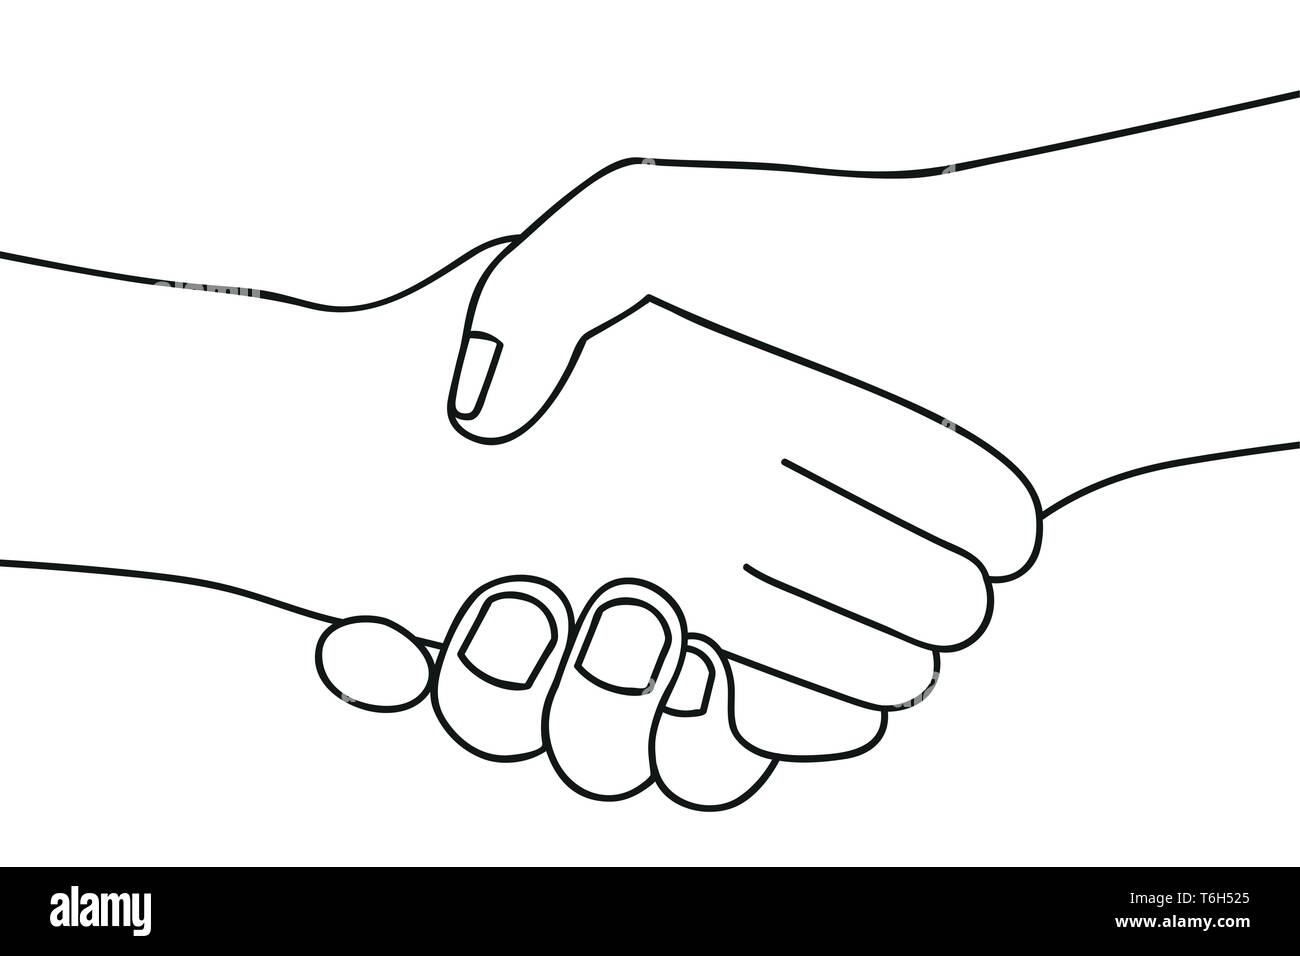 handshake two people shake hands outline drawing on white background vector illustration EPS10 Stock Vector